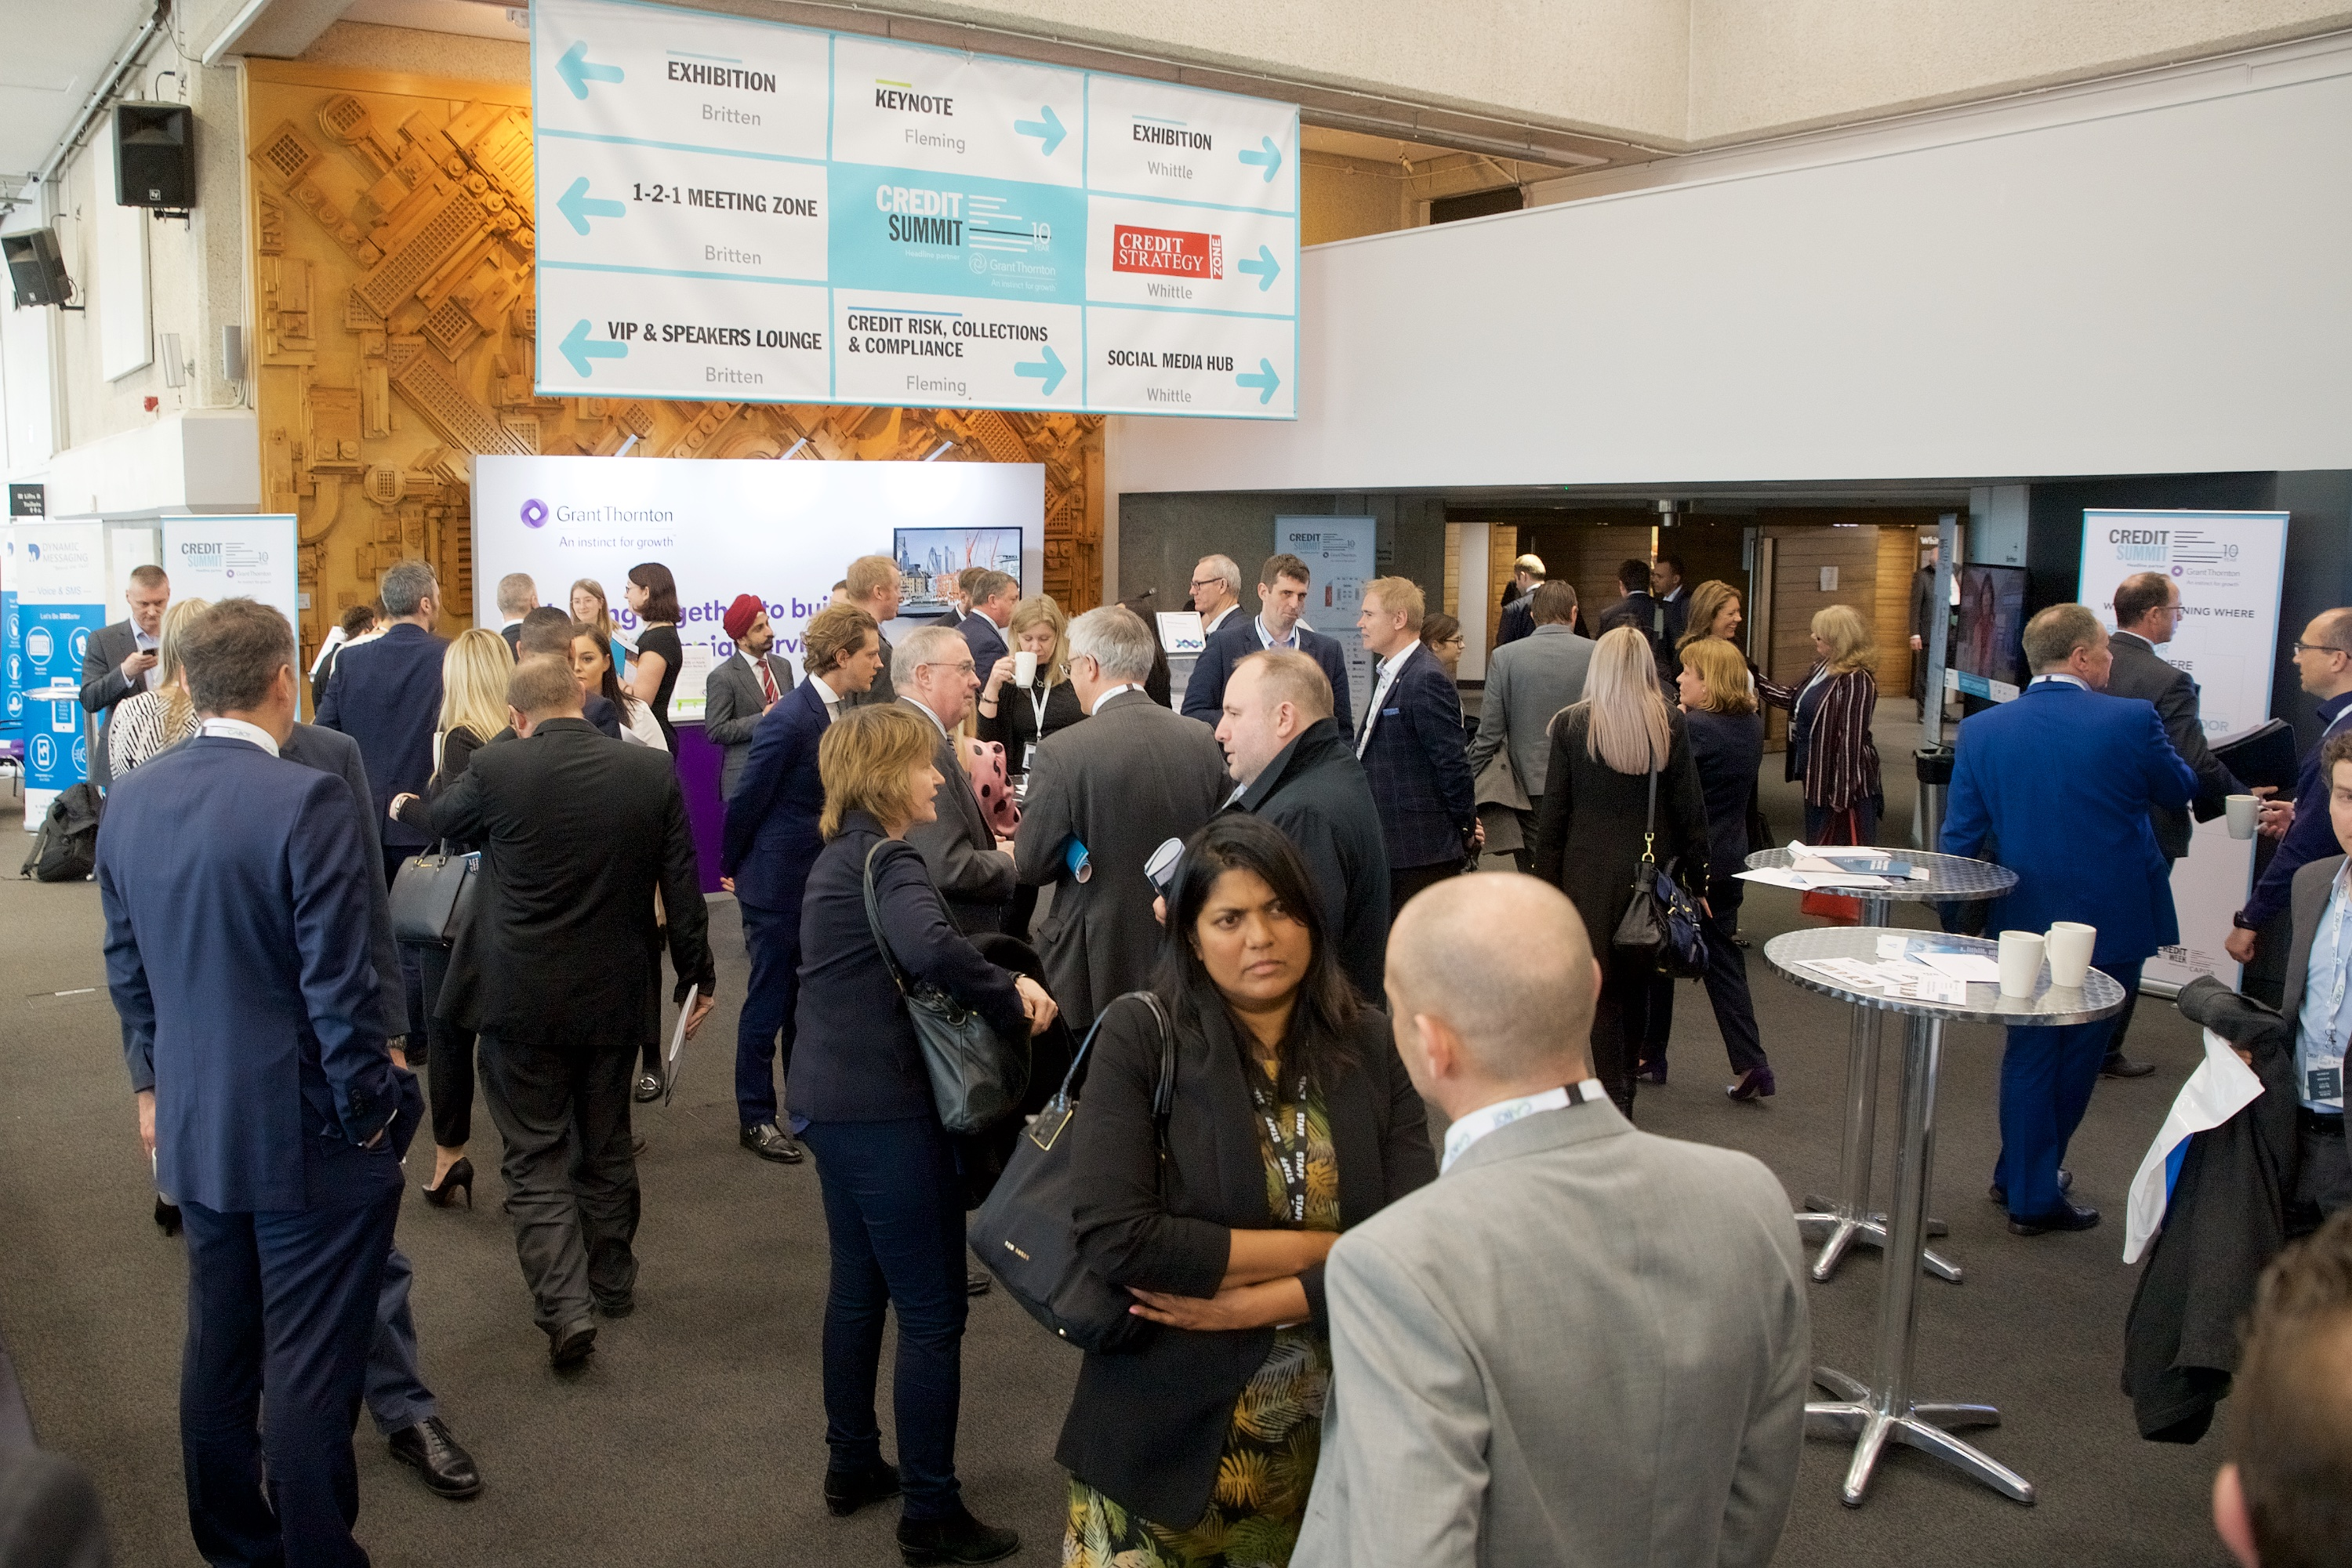 Be part of the UK's largest credit exhibition